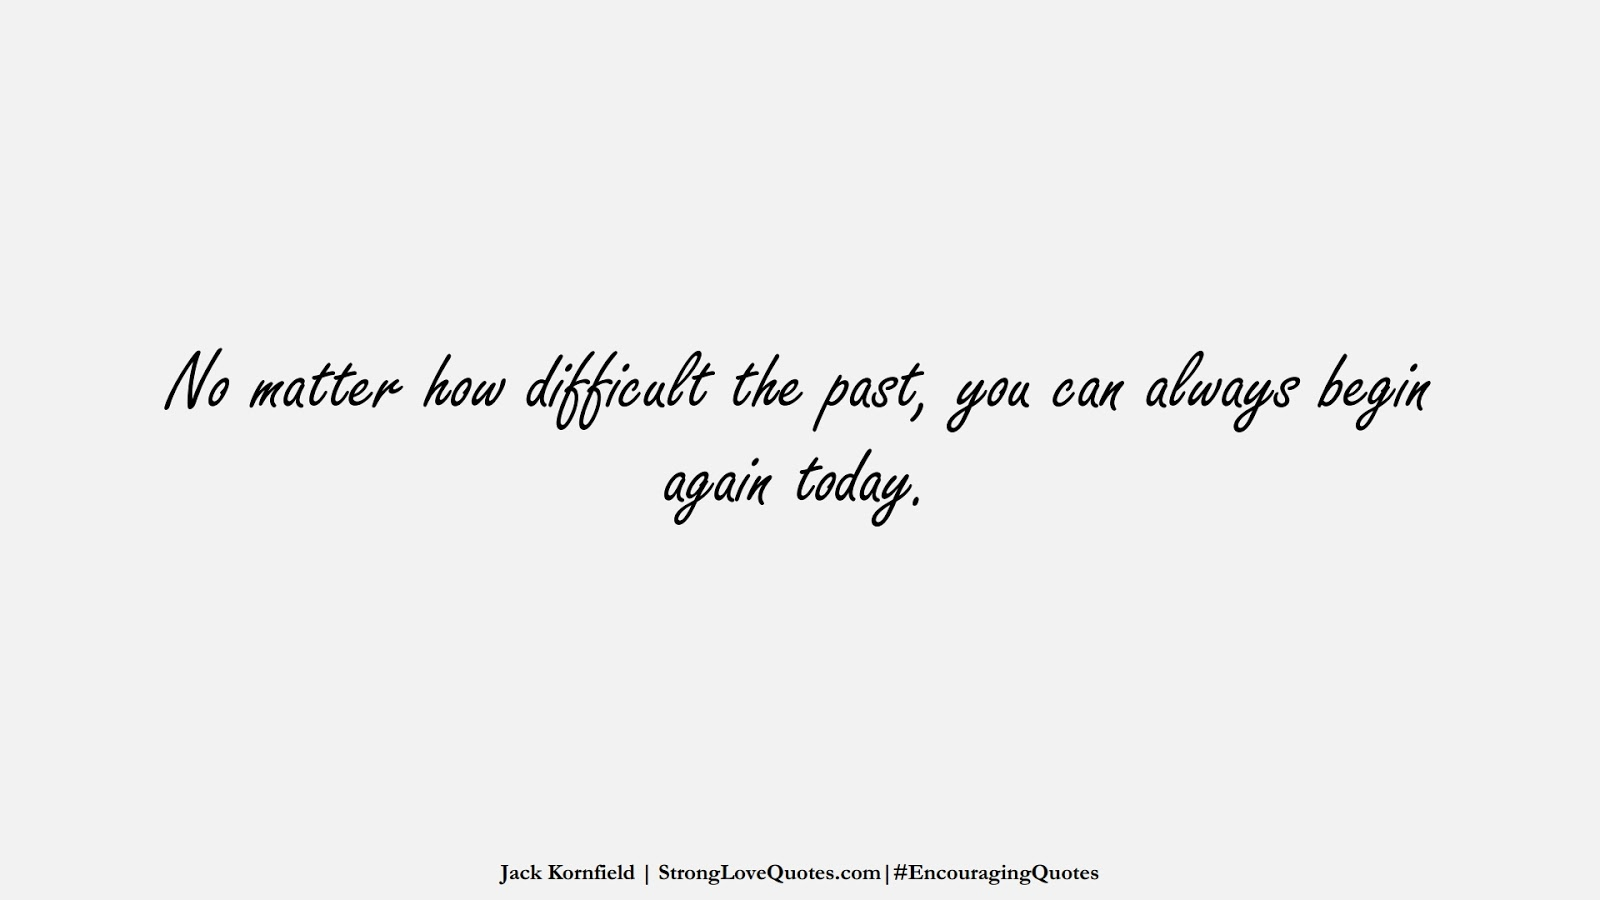 No matter how difficult the past, you can always begin again today. (Jack Kornfield);  #EncouragingQuotes